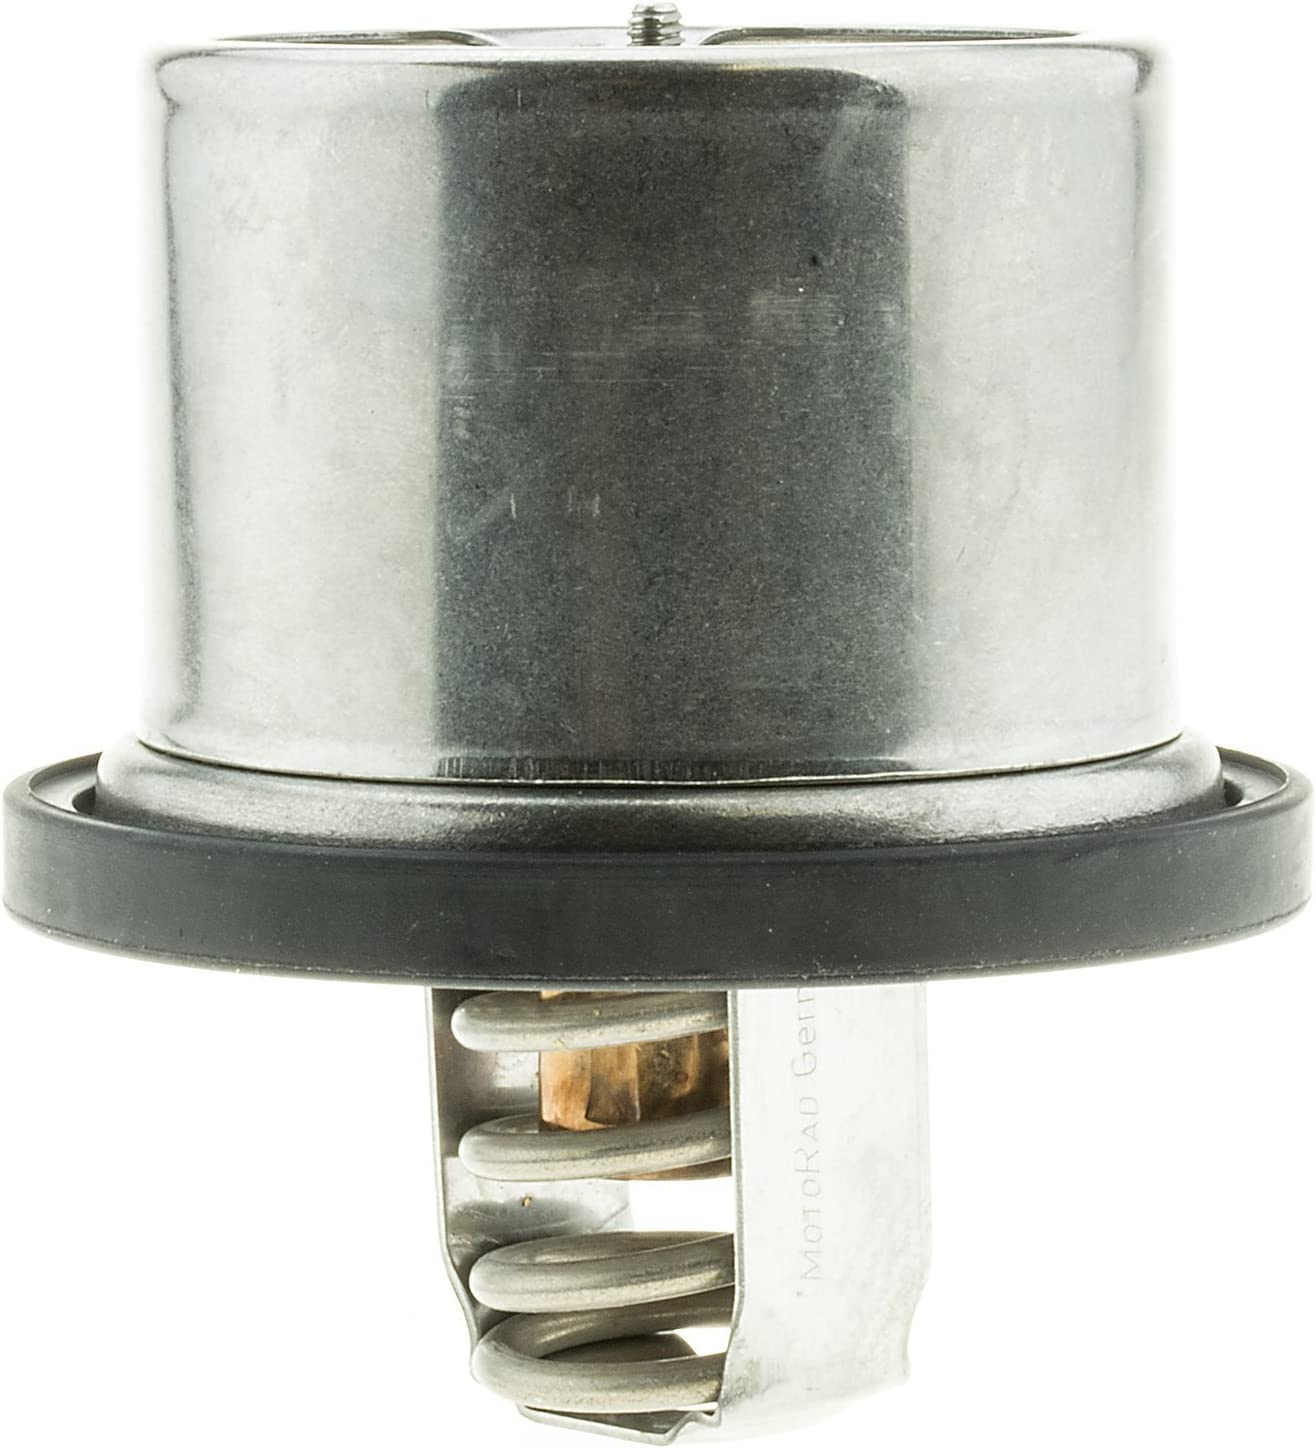 Motorad 459-160 Thermostat with Seal